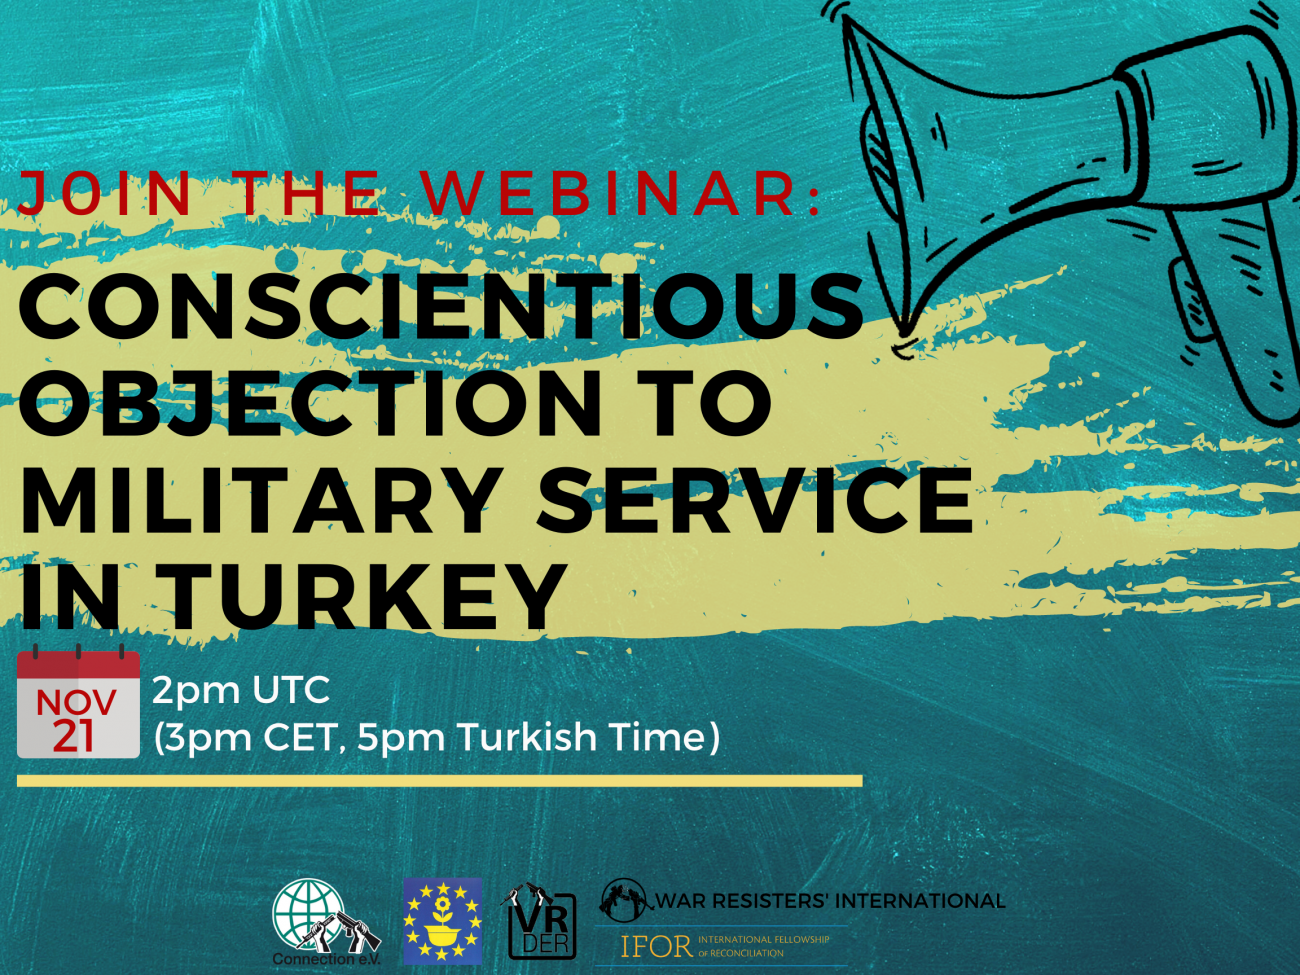 Conscientious Objection in Turkey webinar poster